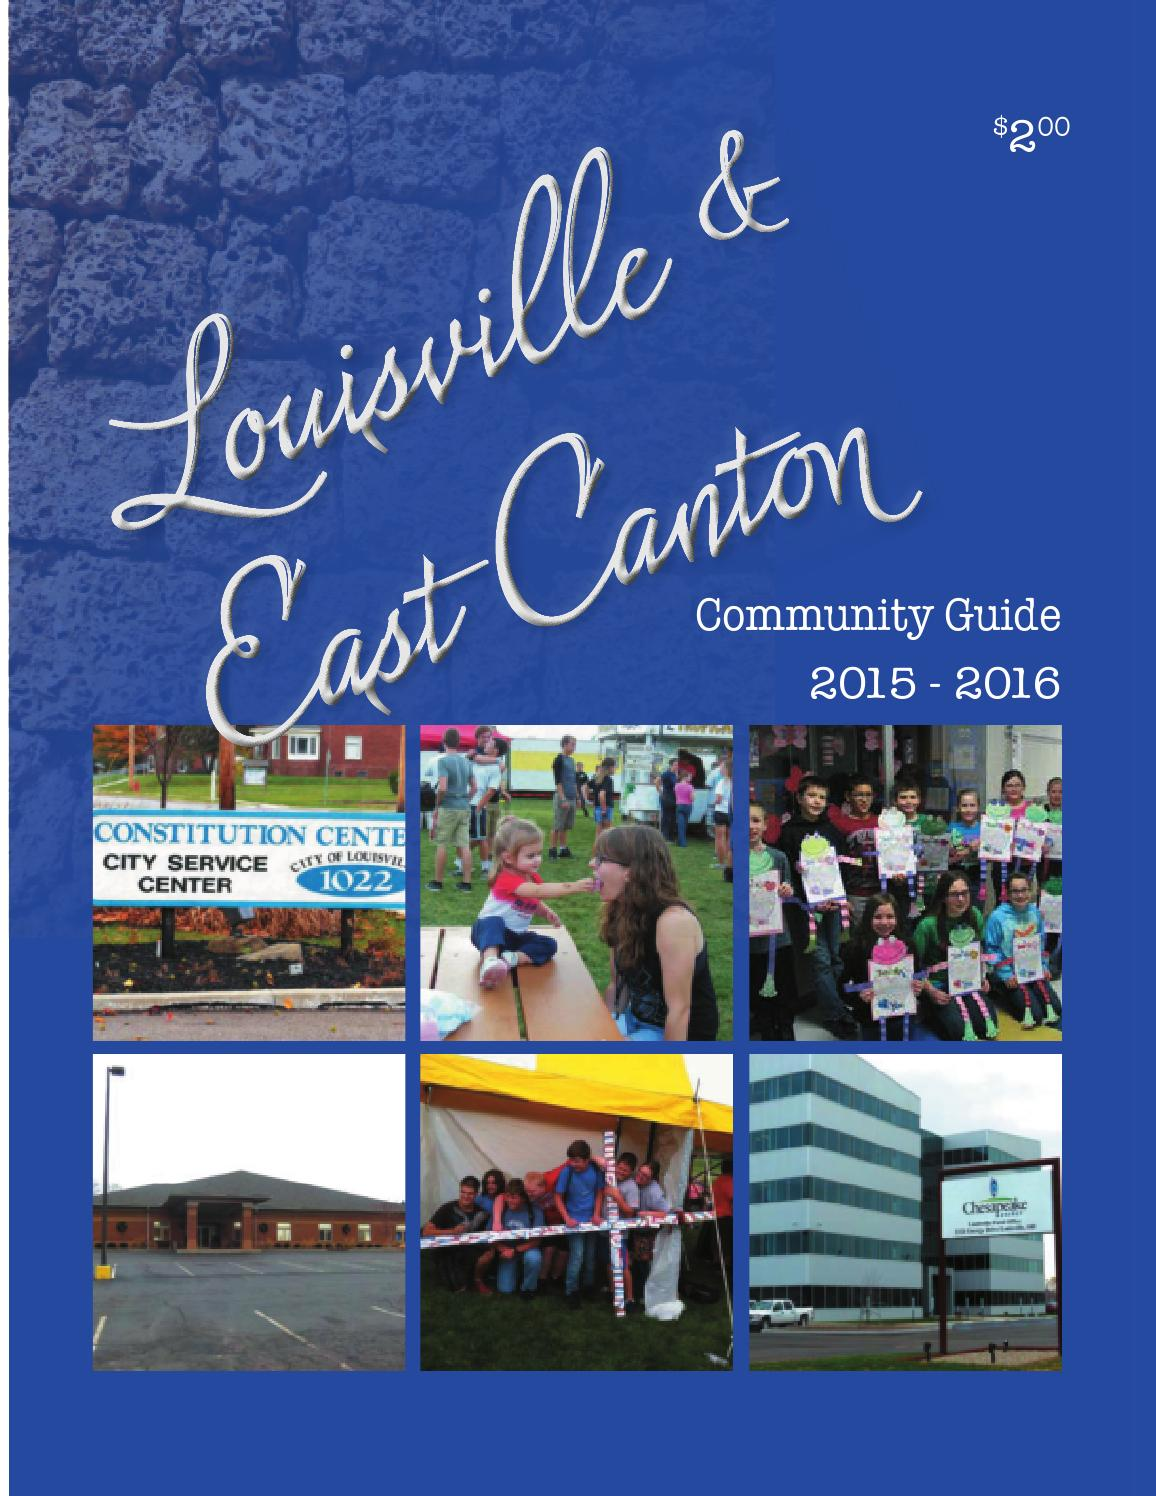 Louisville & East Canton Community Guide 2015-2016 by